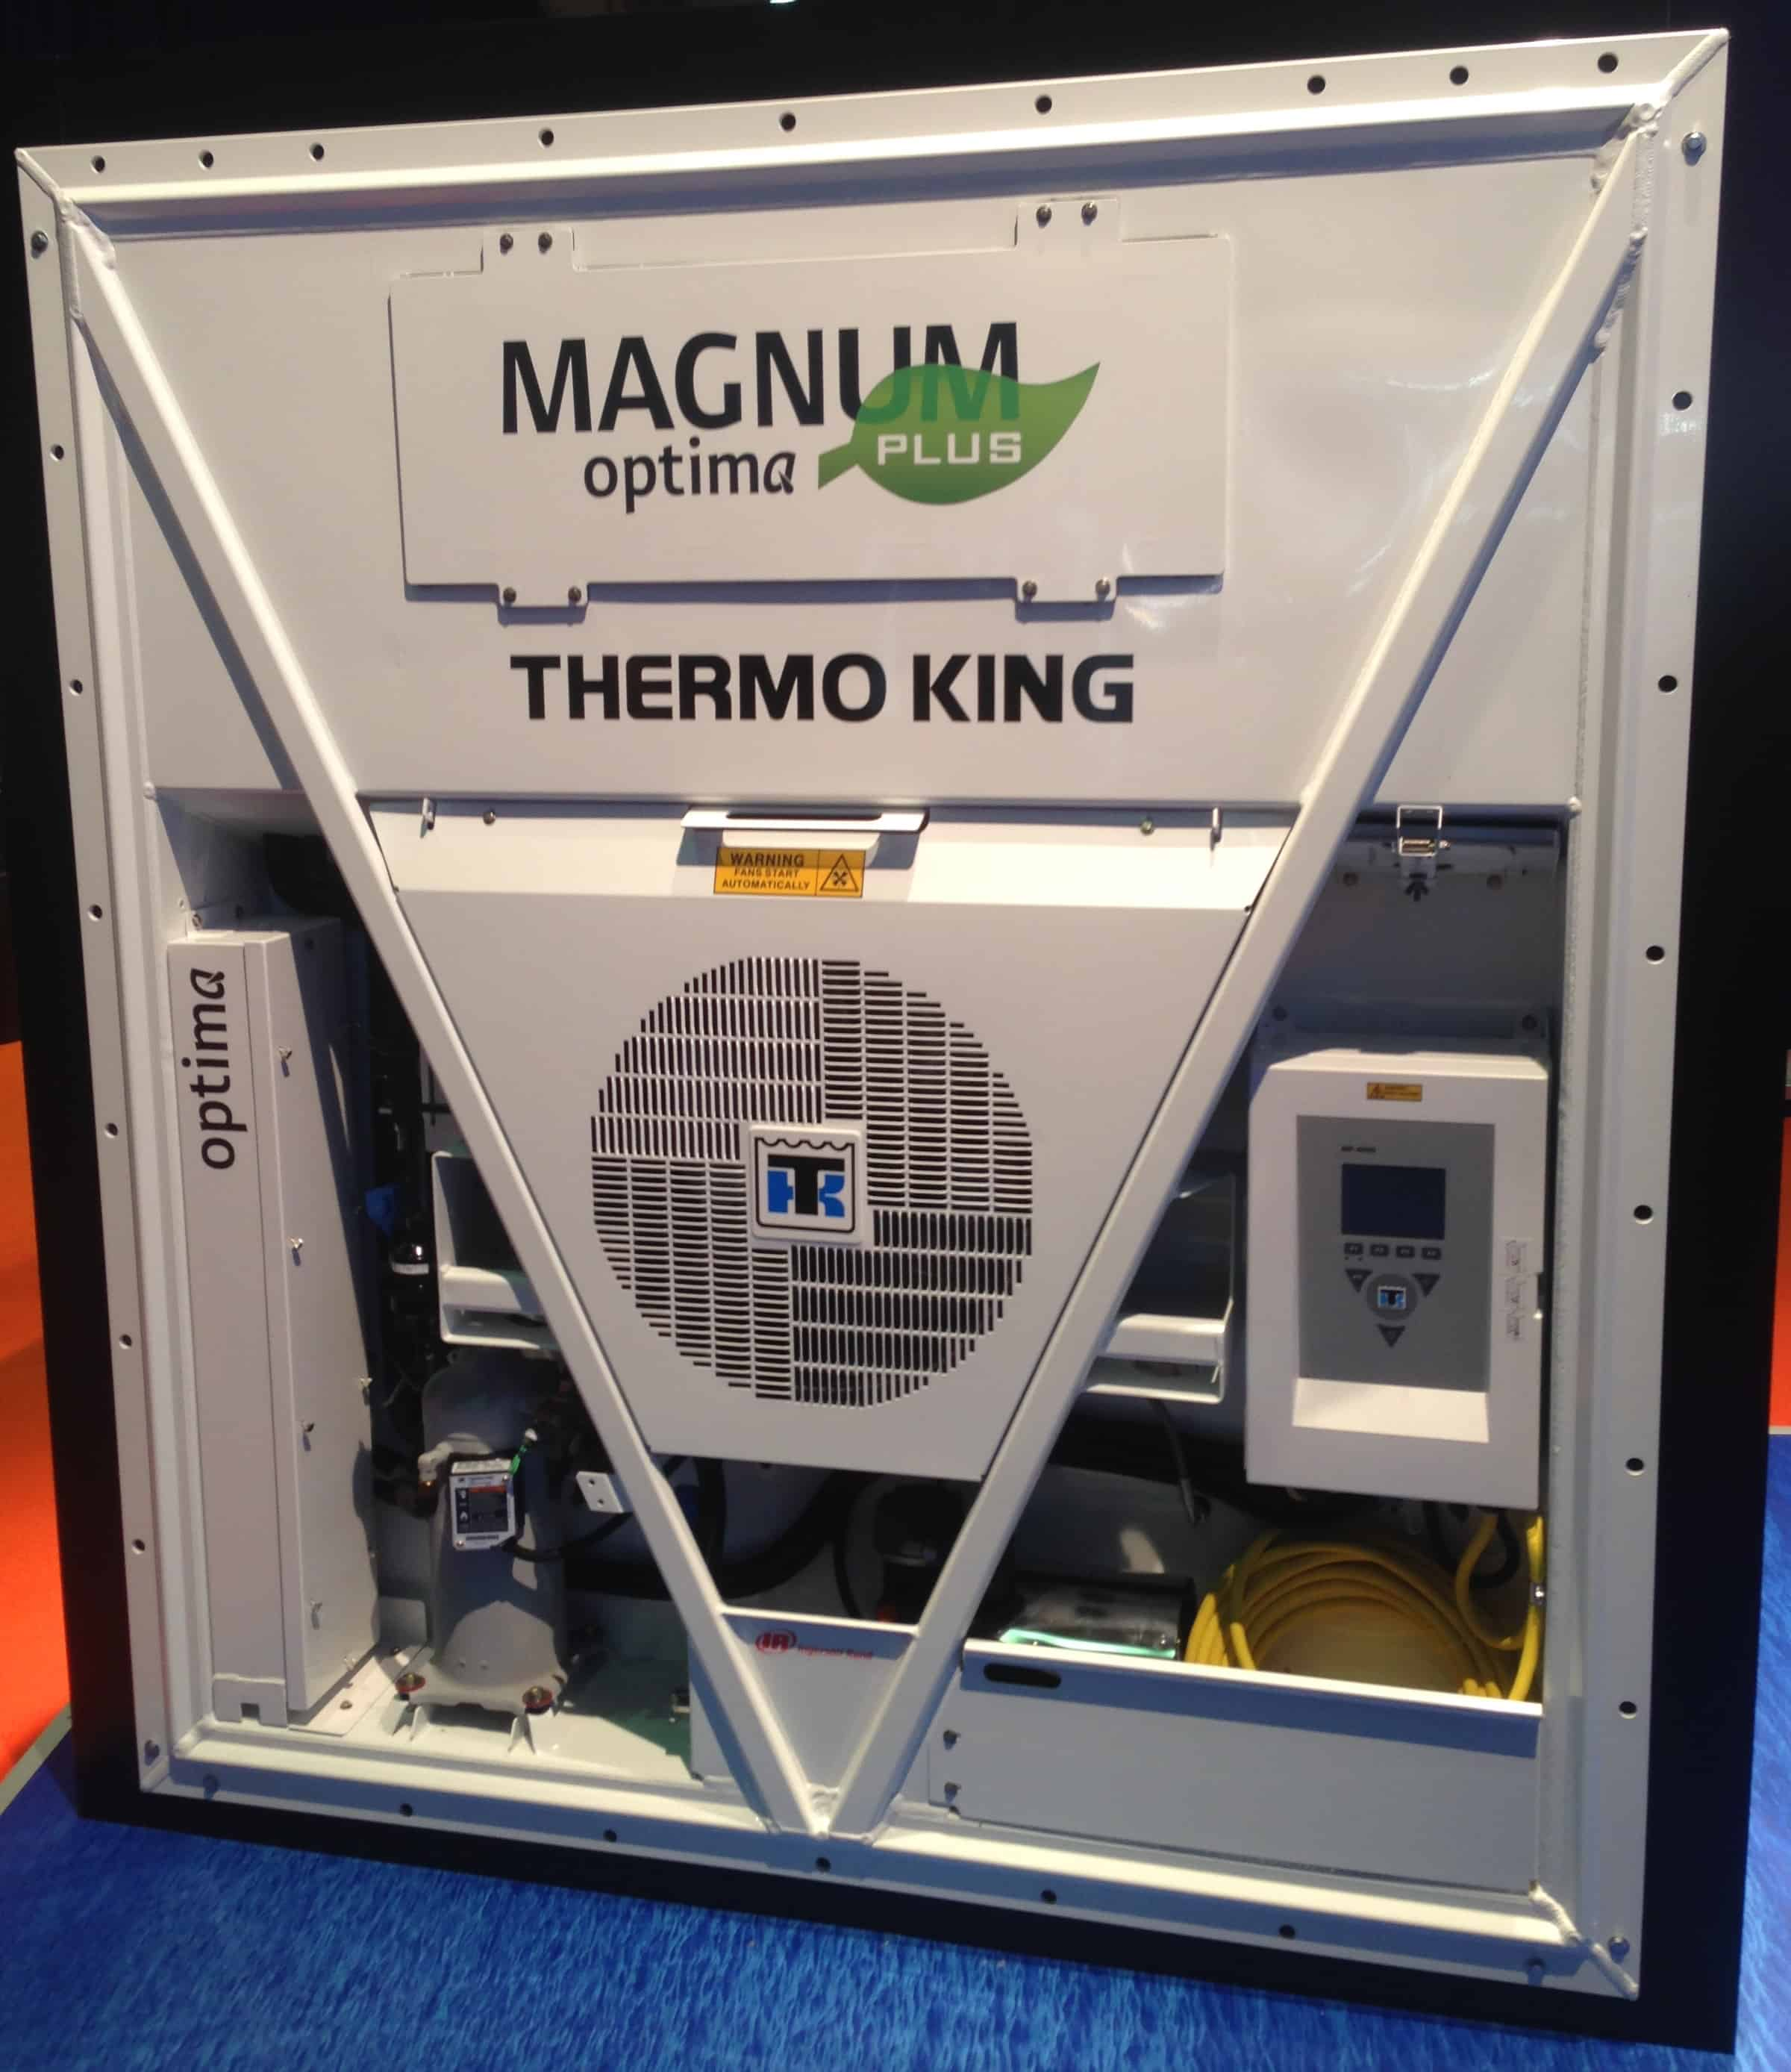 Thermo King unveils new reefer systems at Intermodal Europe